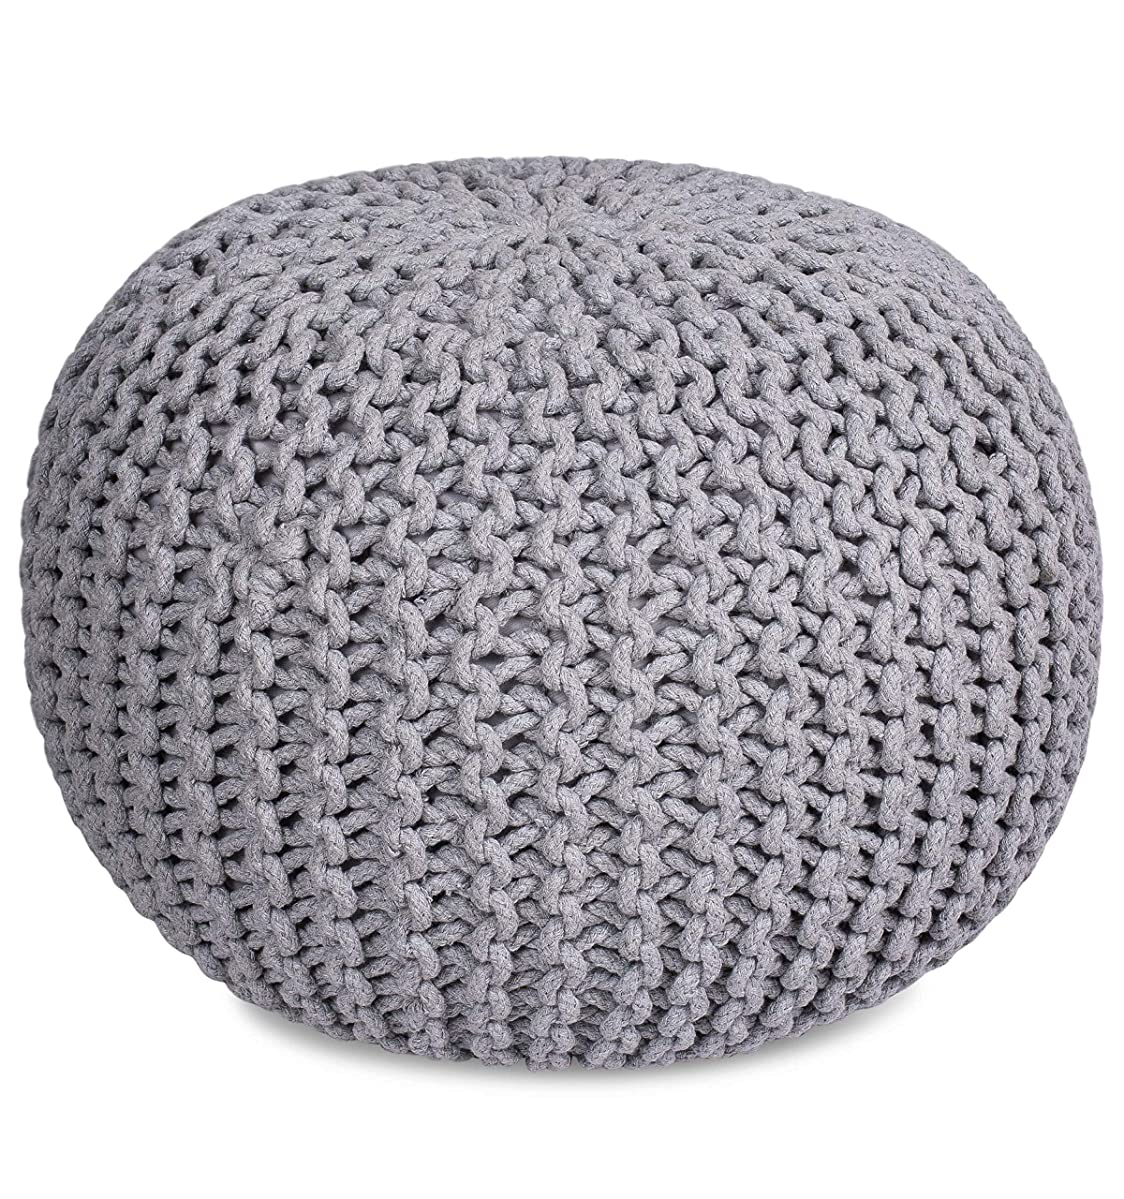 BIRDROCK HOME Round Pouf Foot Stool Ottoman | Knit Bean Bag Floor Chair | Cotton Braided Cord | Great for The Living Room, Bedroom and Kids Room | Small Furniture (Light Grey)